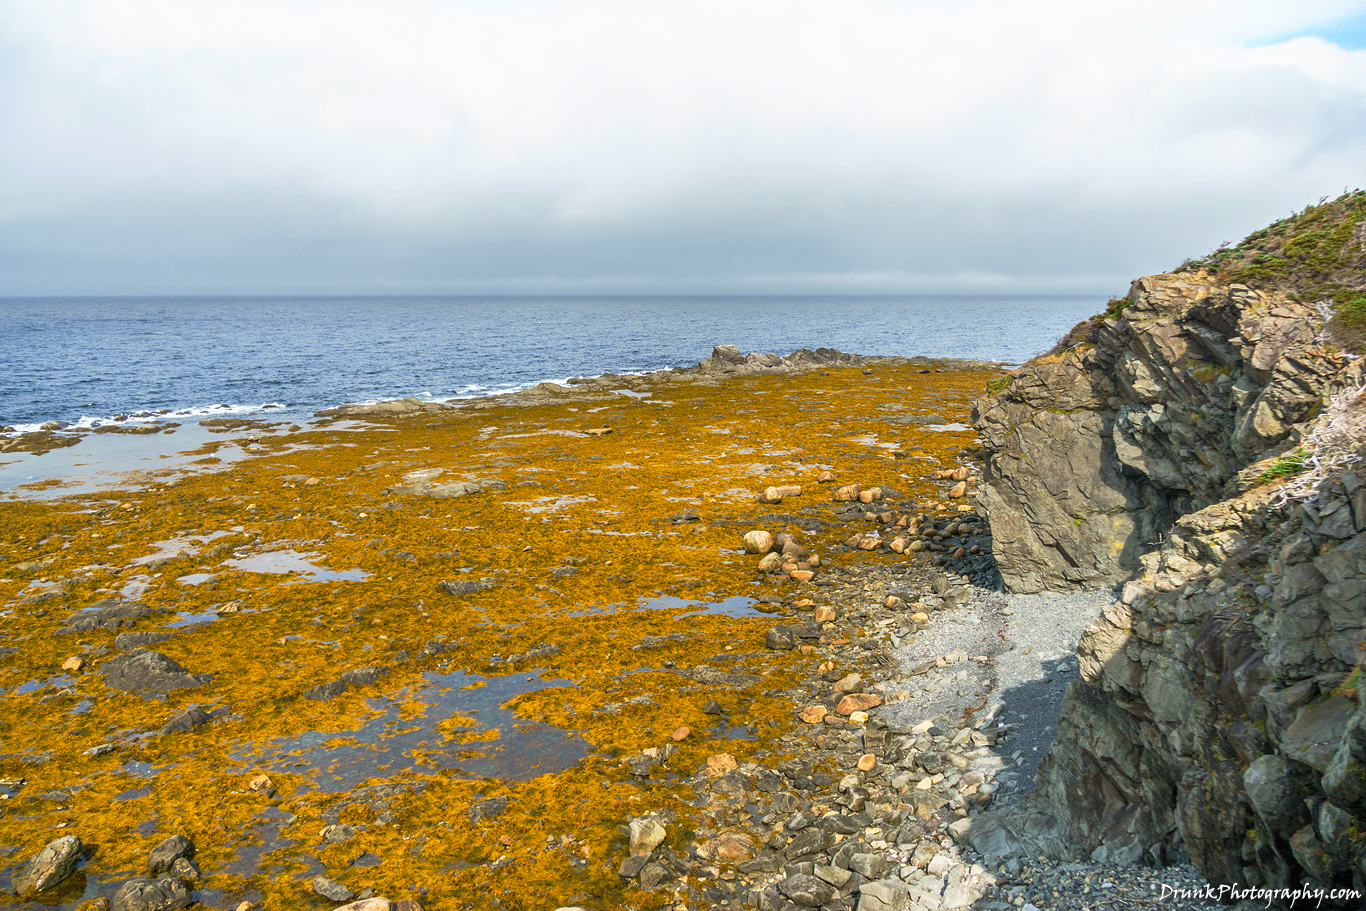 Rocky Harbour, Lobster Cove Head Lighthouse Drunkphotography.com